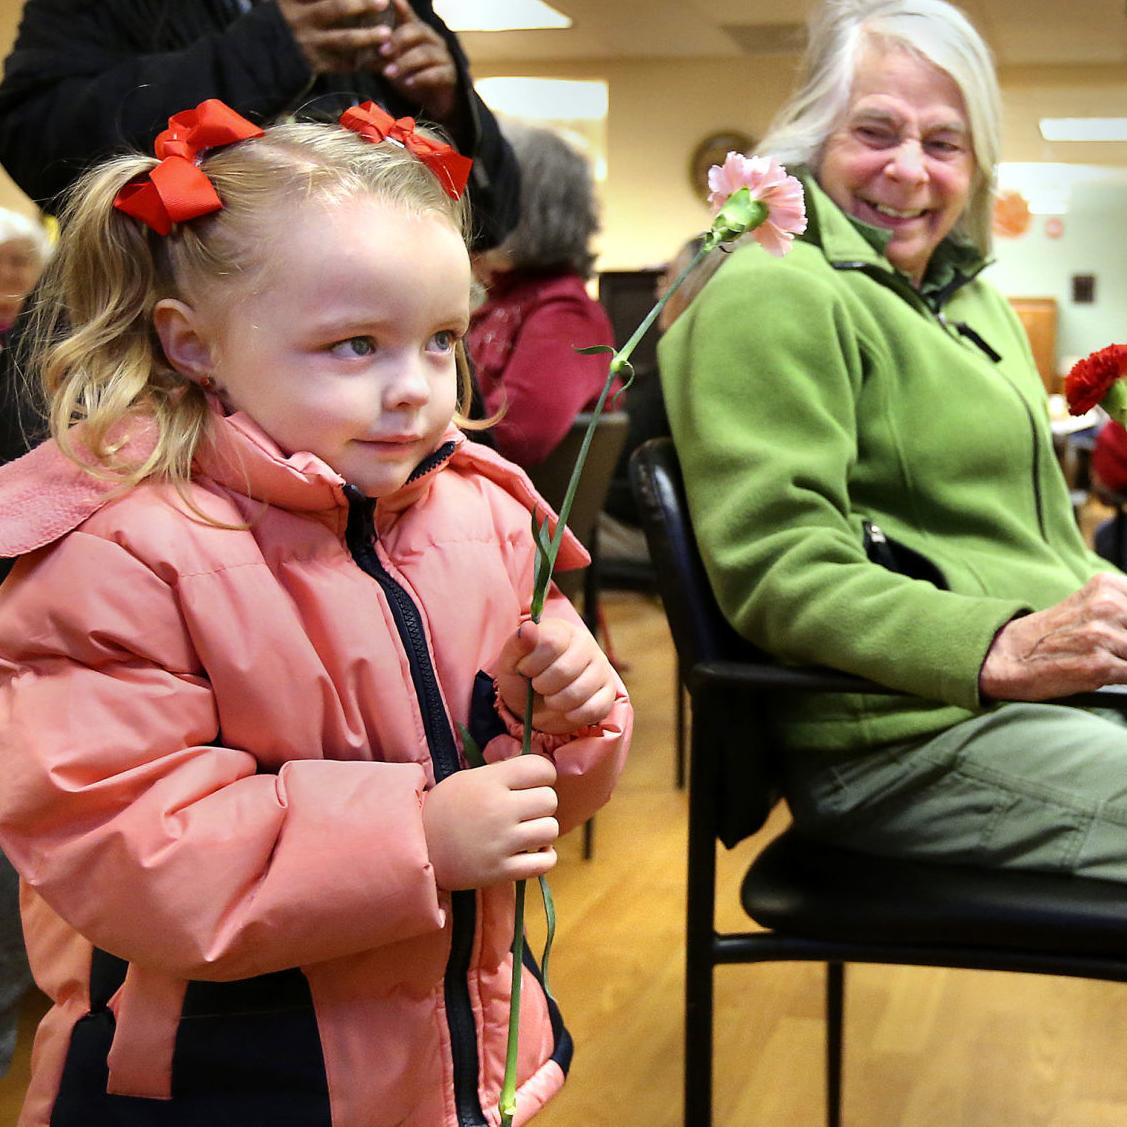 Gift of joy delivered to seniors on Valentine's Day